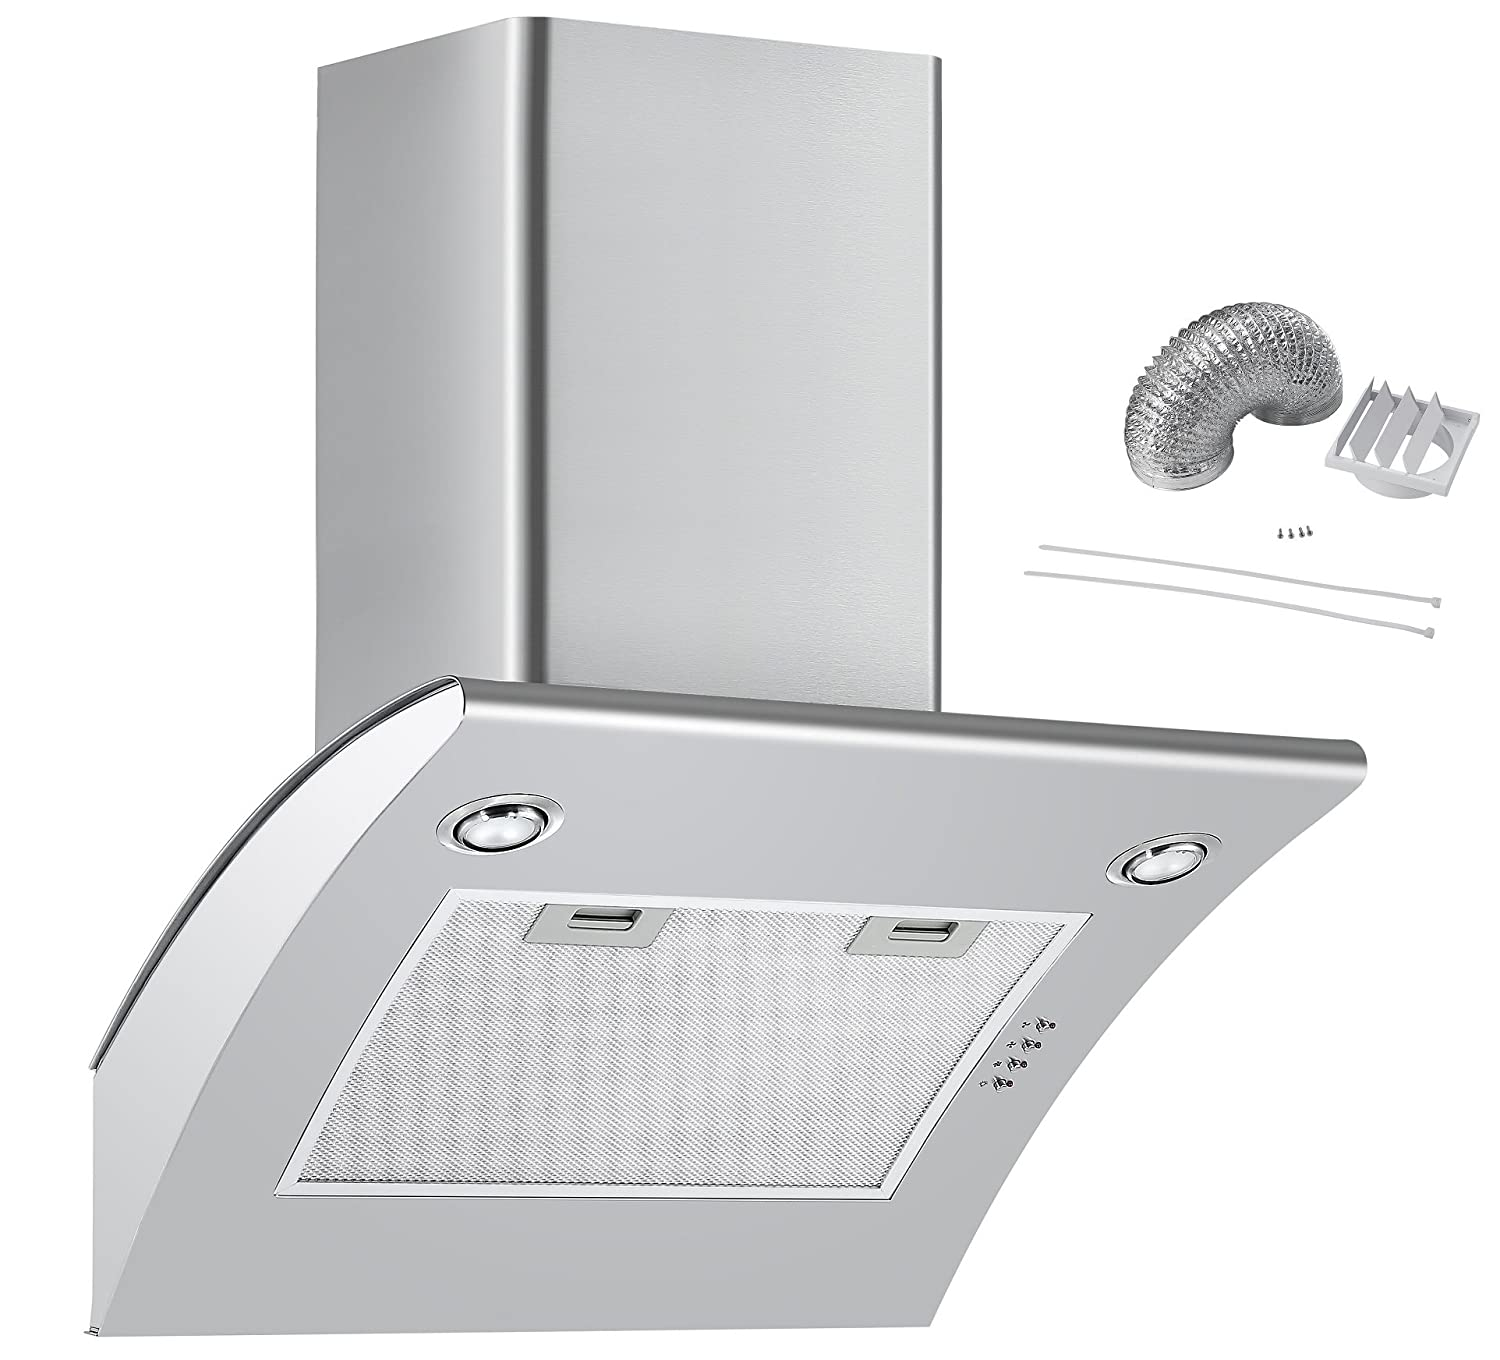 Cookology ARCH600SS 60cm Extractor Fan   Angled Stainless Steel Chimney Cooker Hood & Ducting Kit ARCH600SS DK1M150